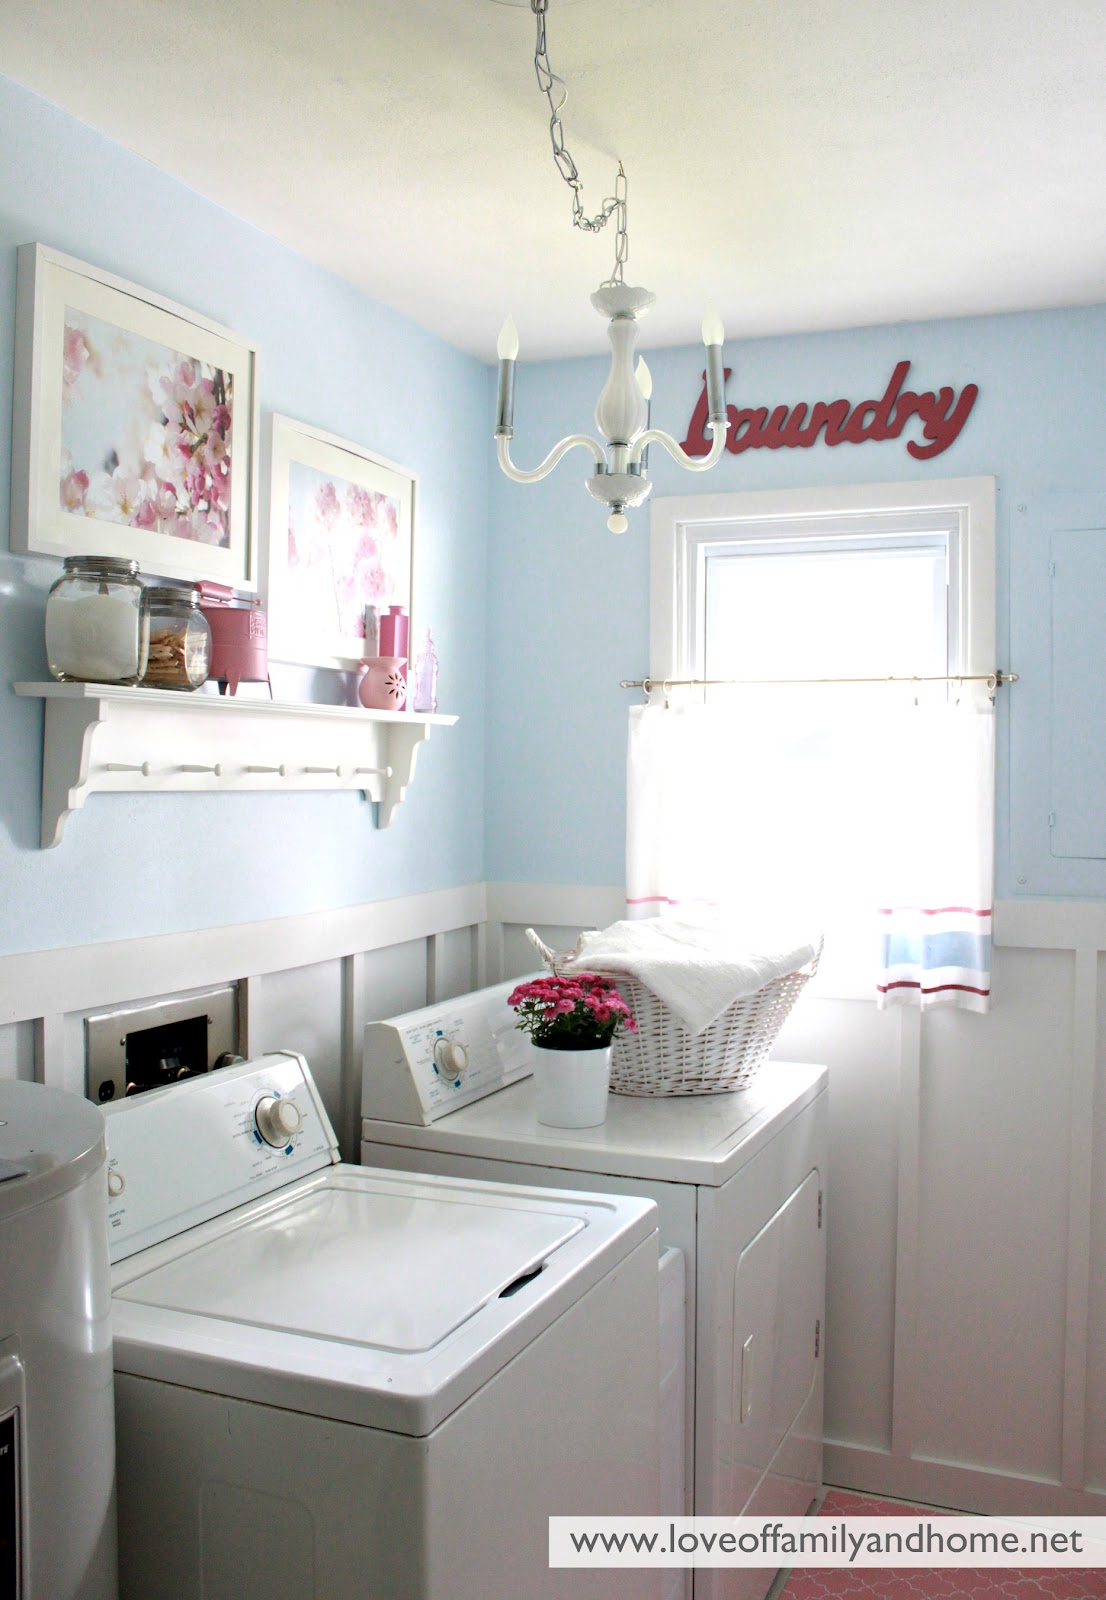 Laundry Room Reveal {Take 2}